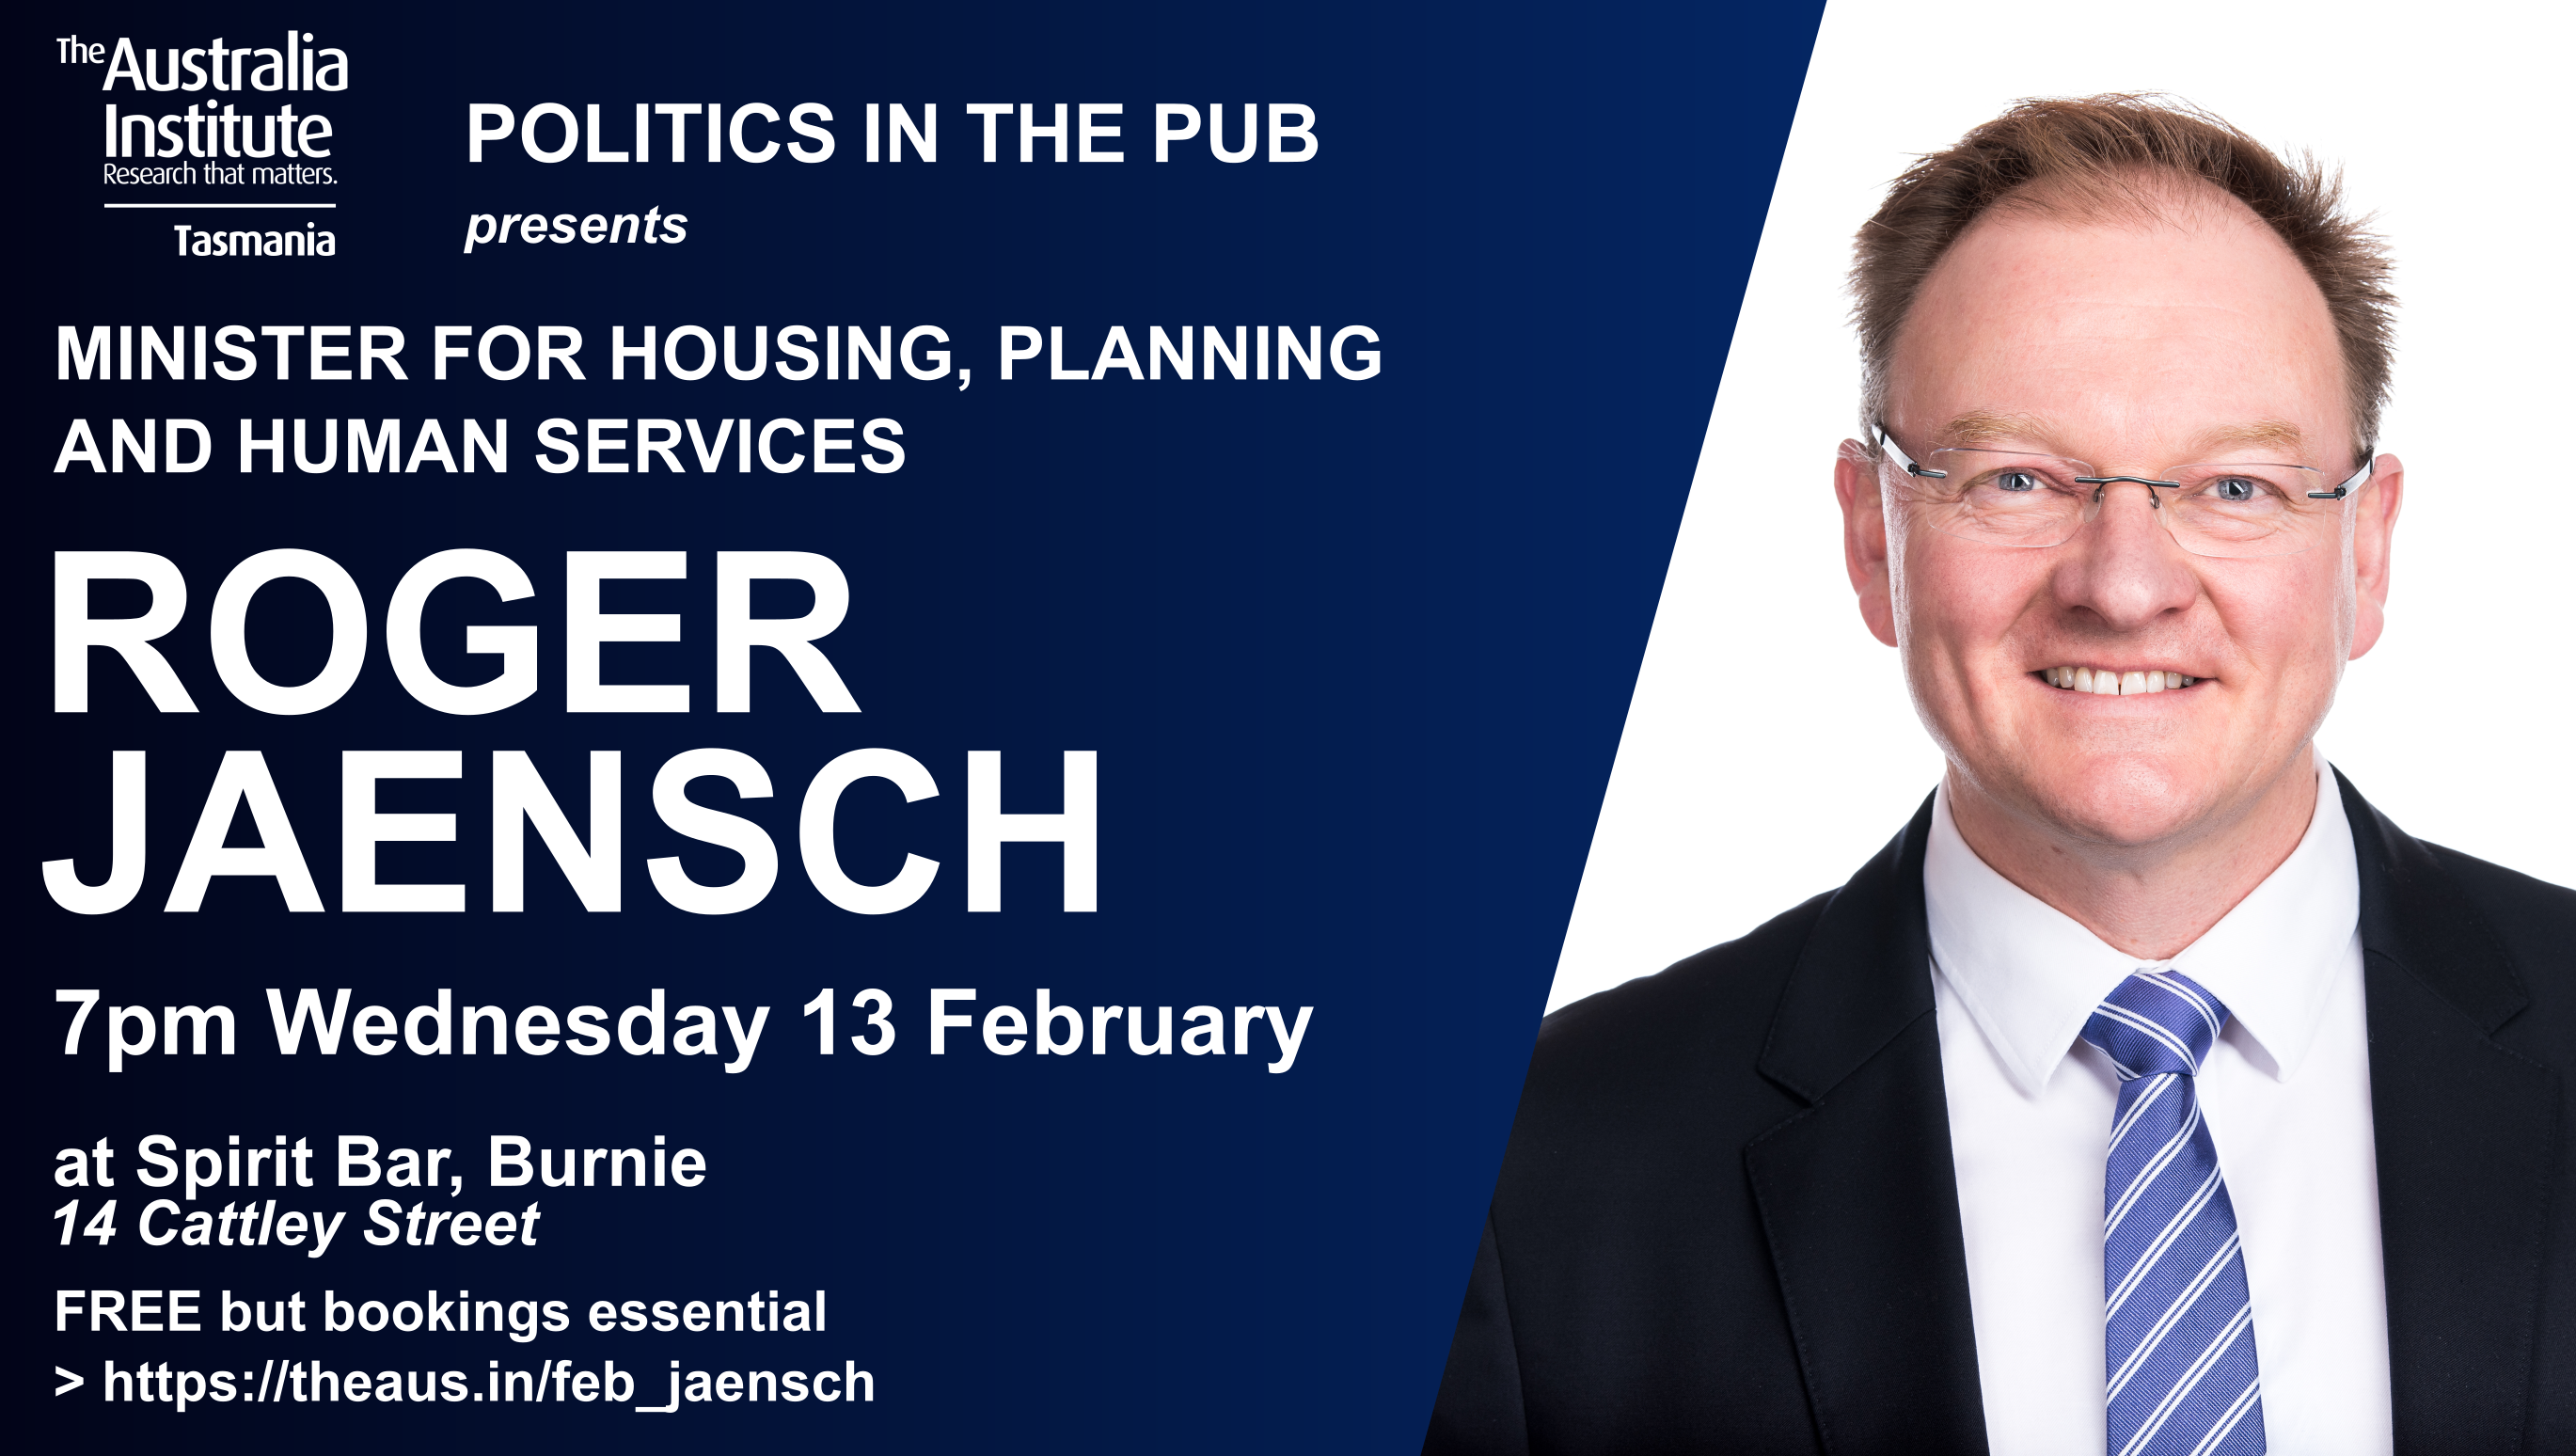 Invitation to Roger Jaensch Politics in the Pub